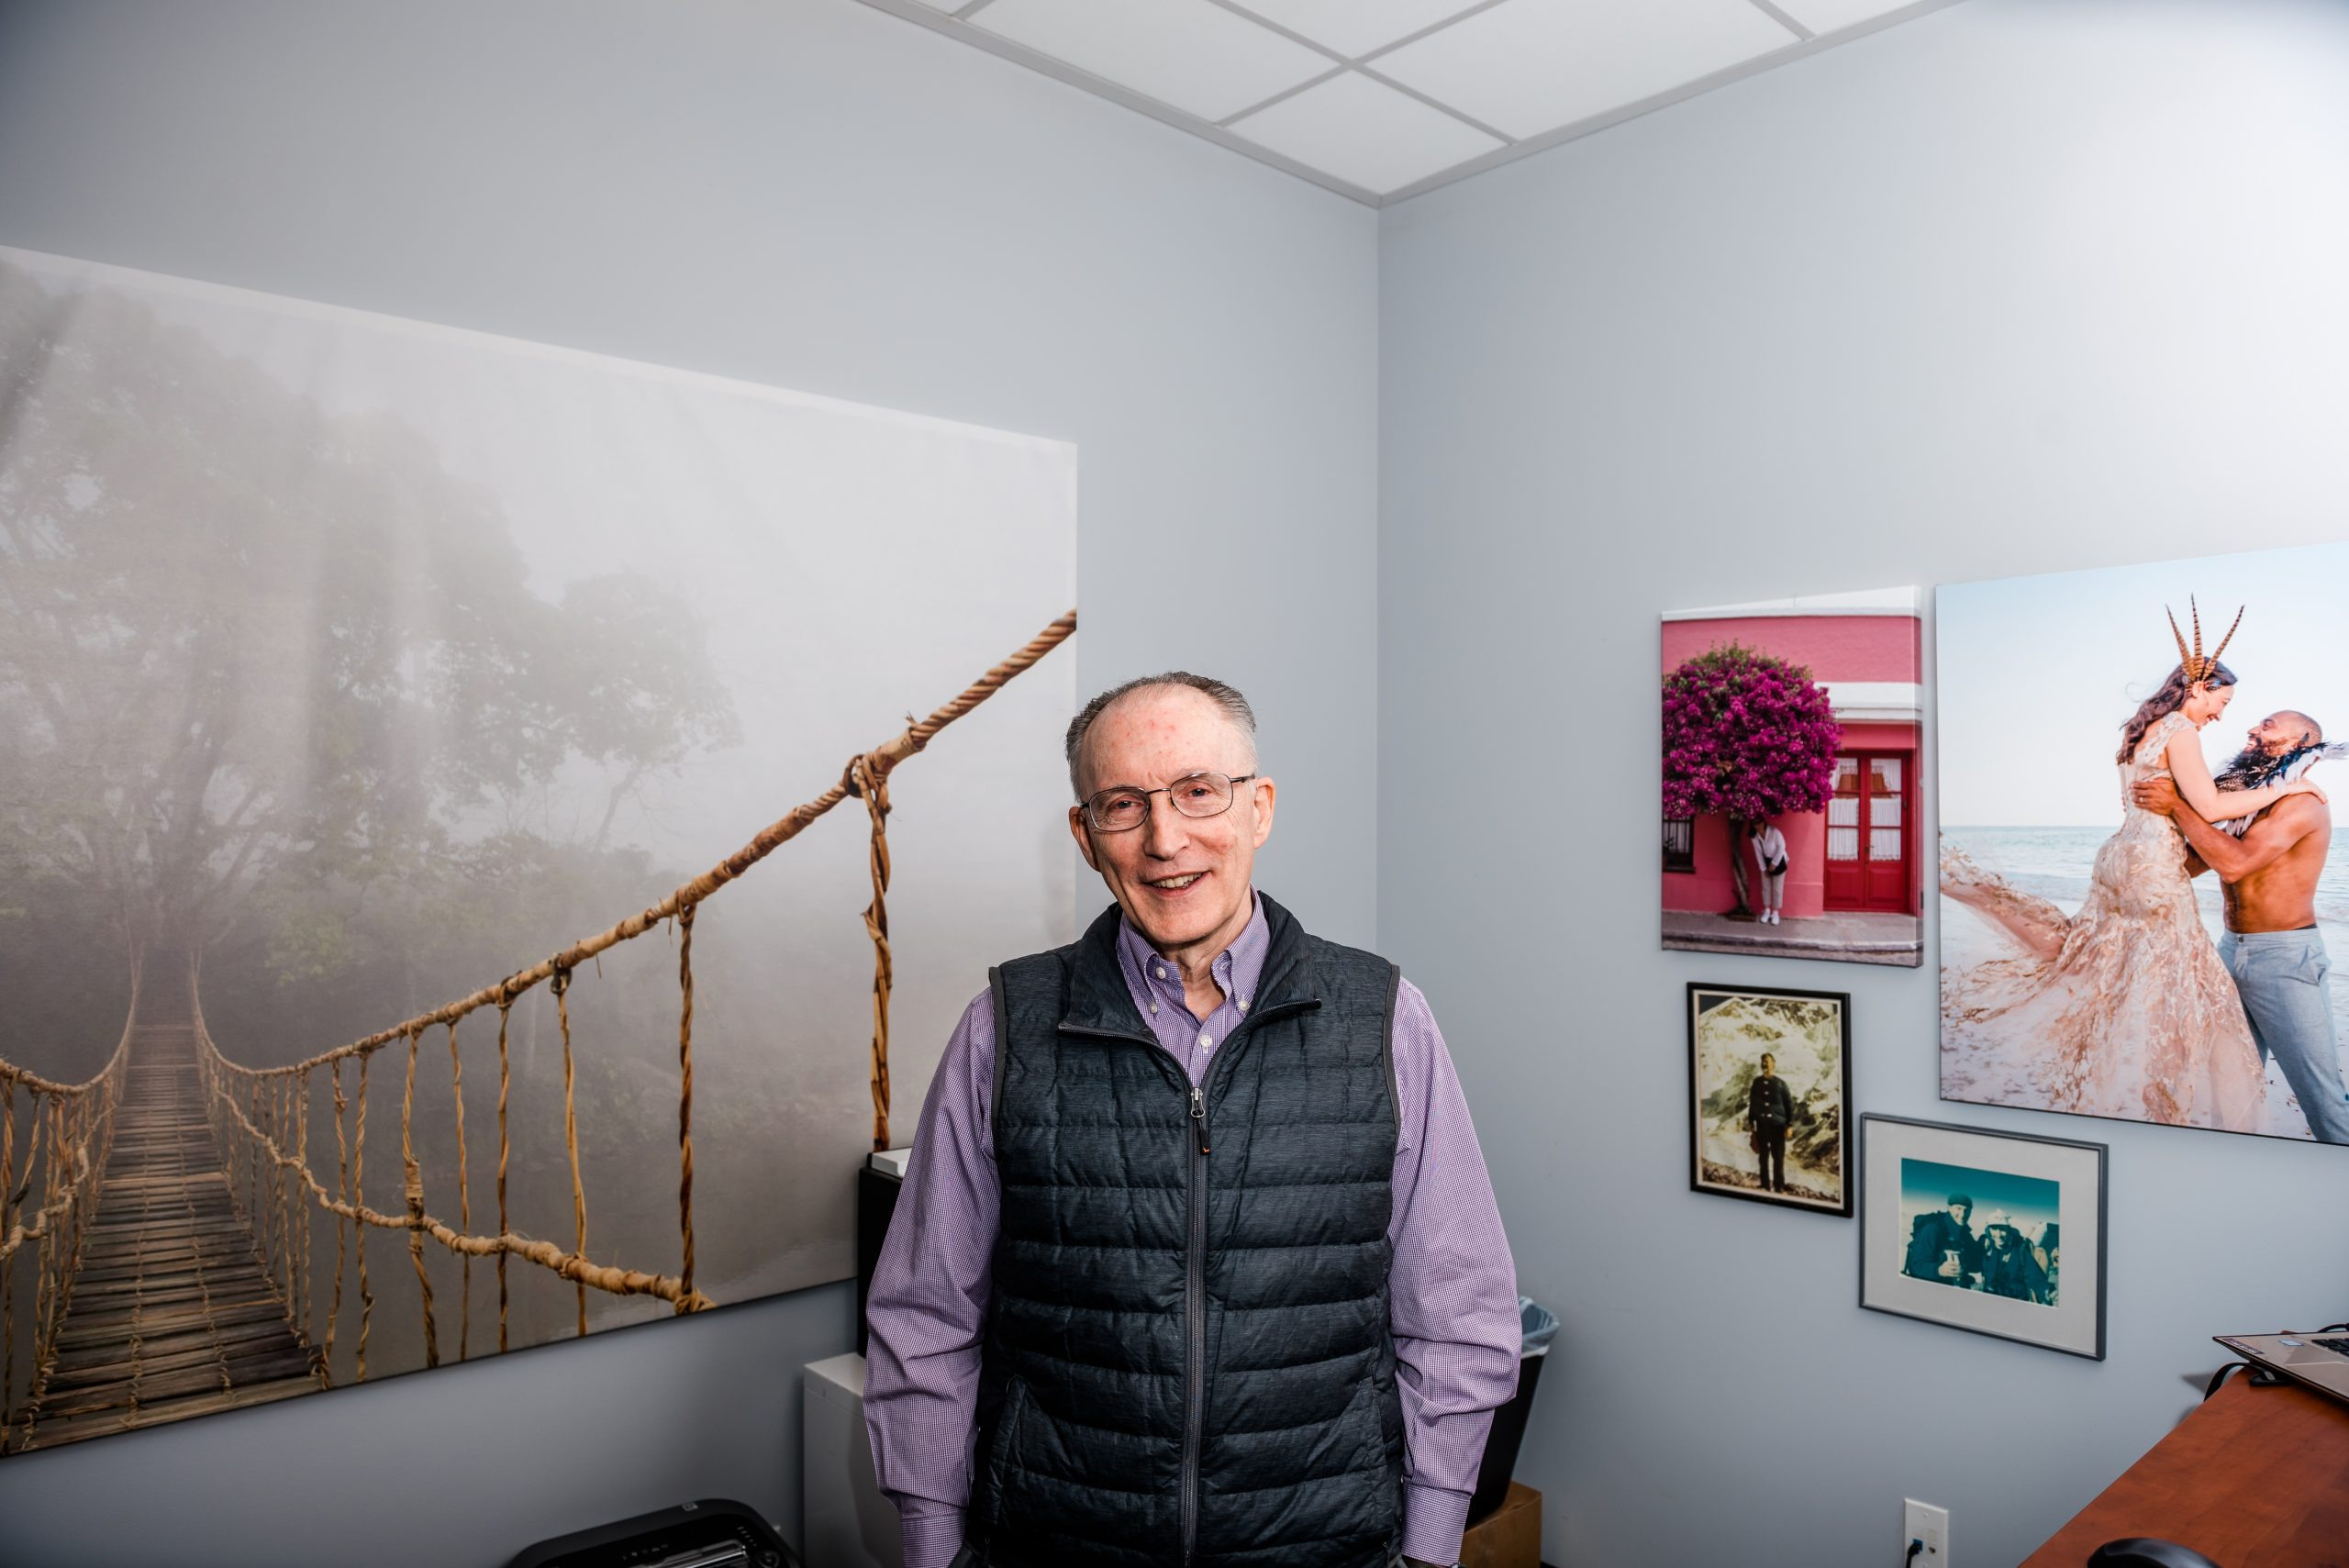 The Godfather of Direct Primary Care Creates a More Ethical Career Path for Independent Physicians